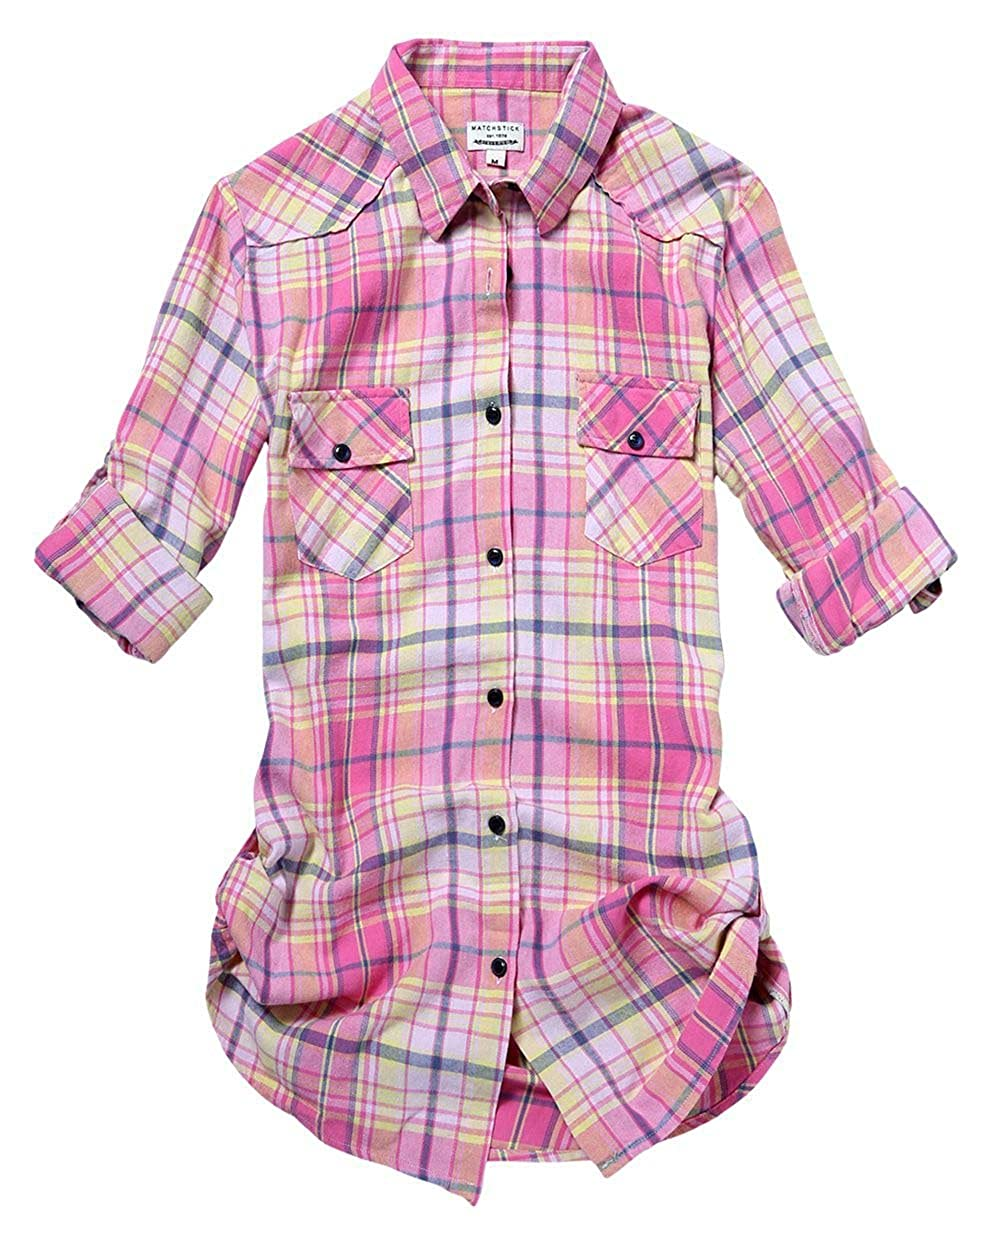 2022 Check 2 Match Women's Long Sleeve Flannel Plaid Shirt